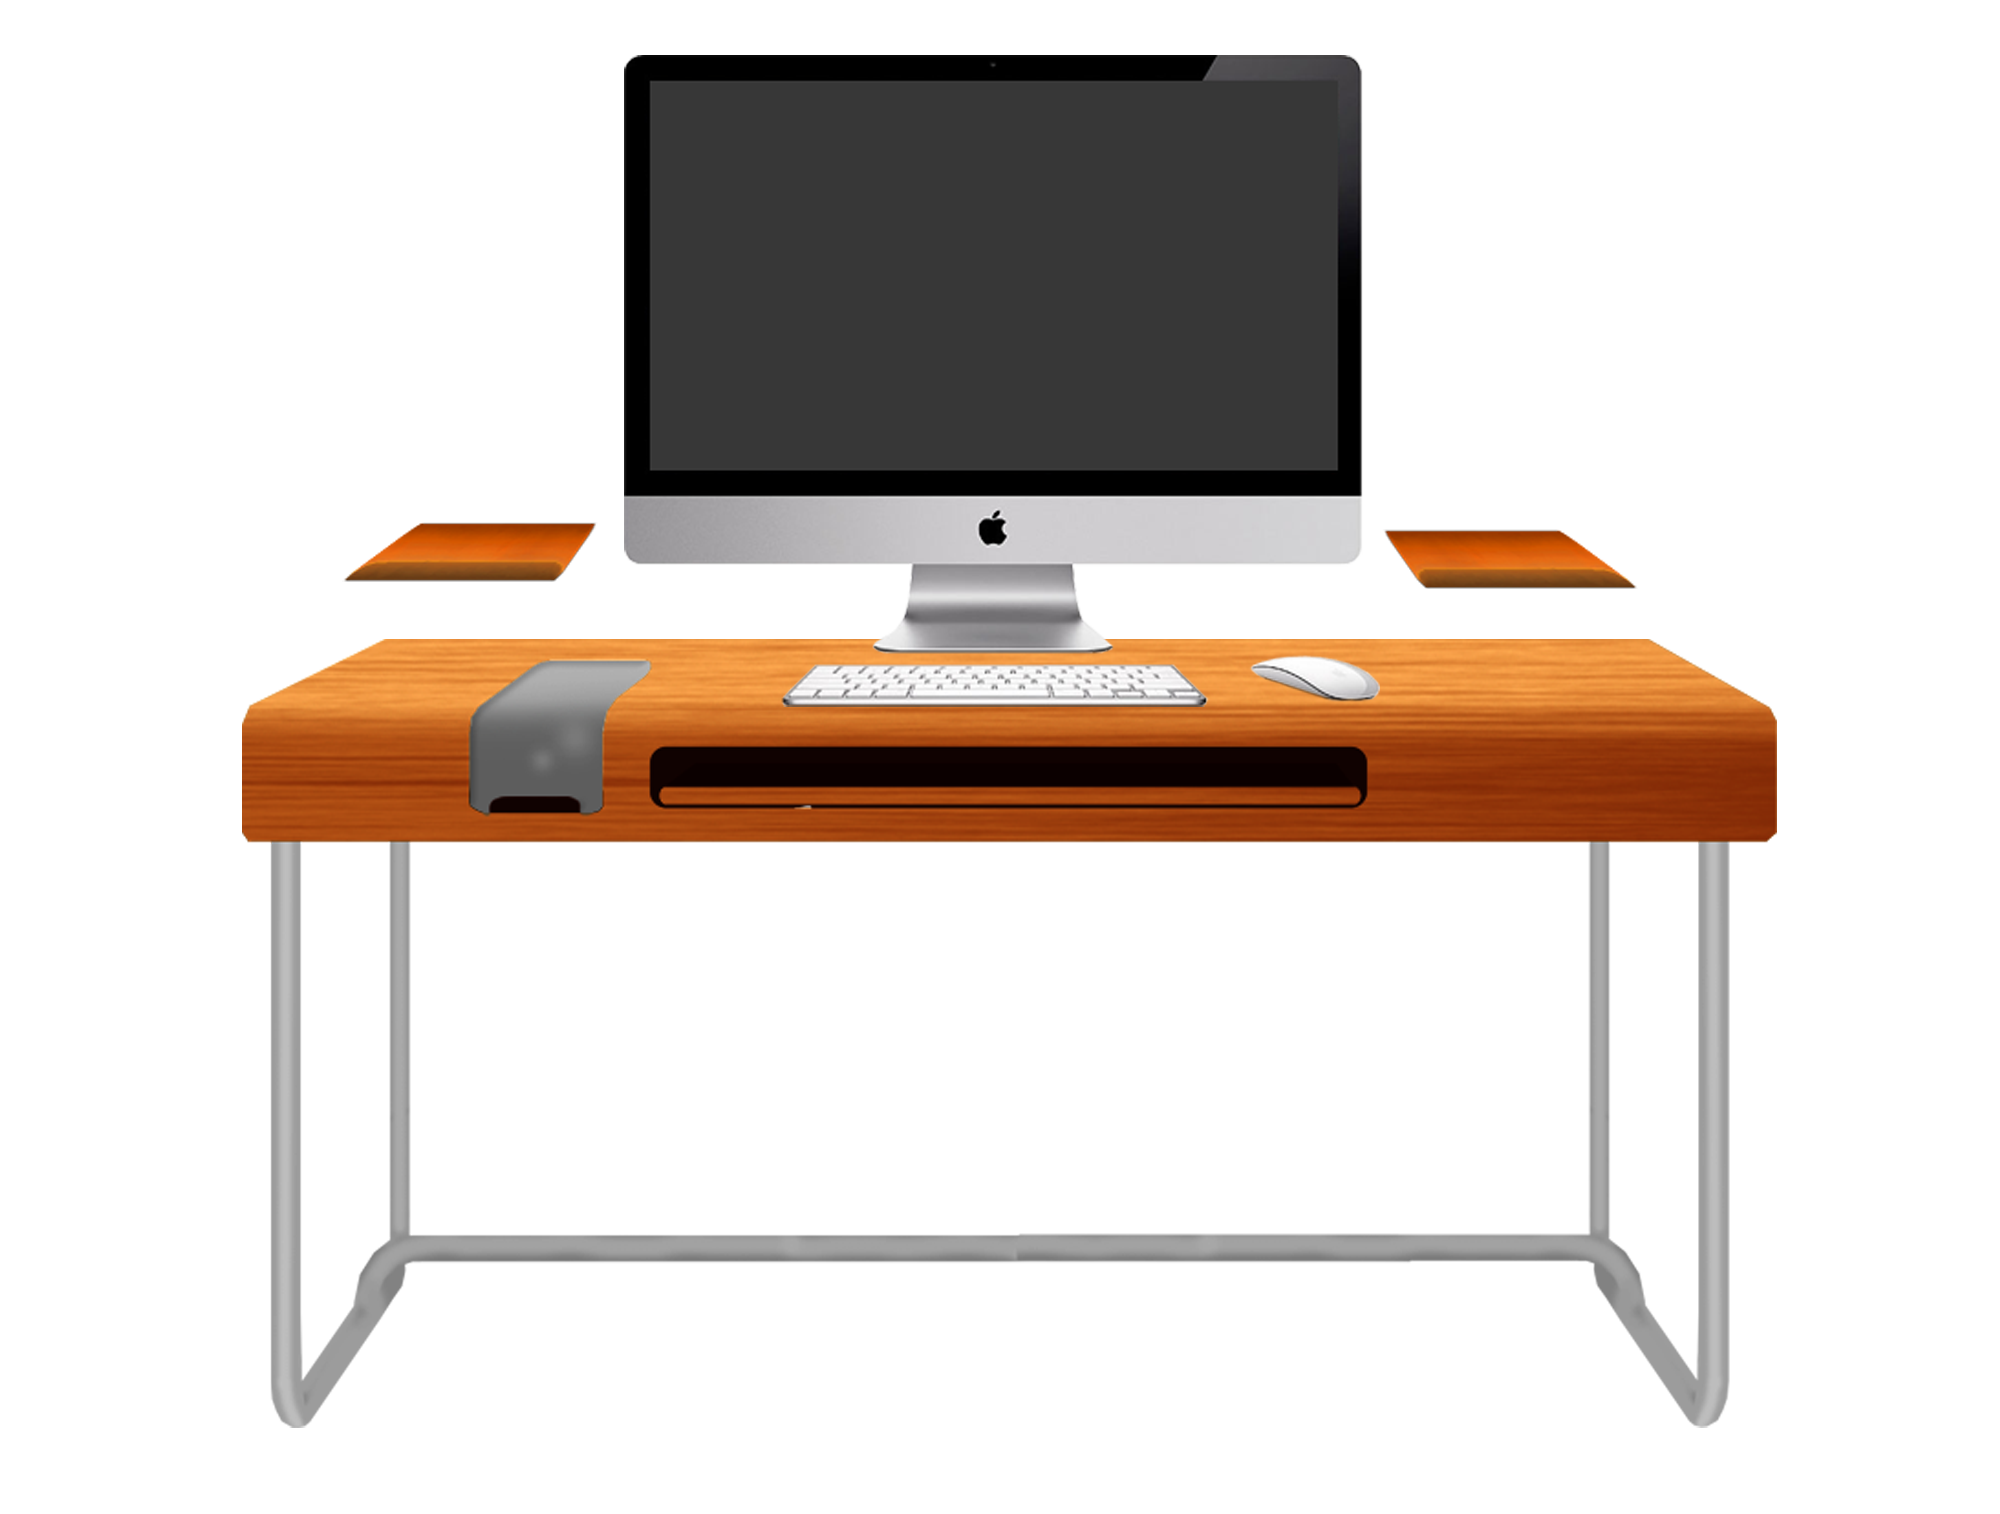 modern orange computer desk design with black keyboard and white down also computer set - Herman Miller Umhllen Schreibtisch